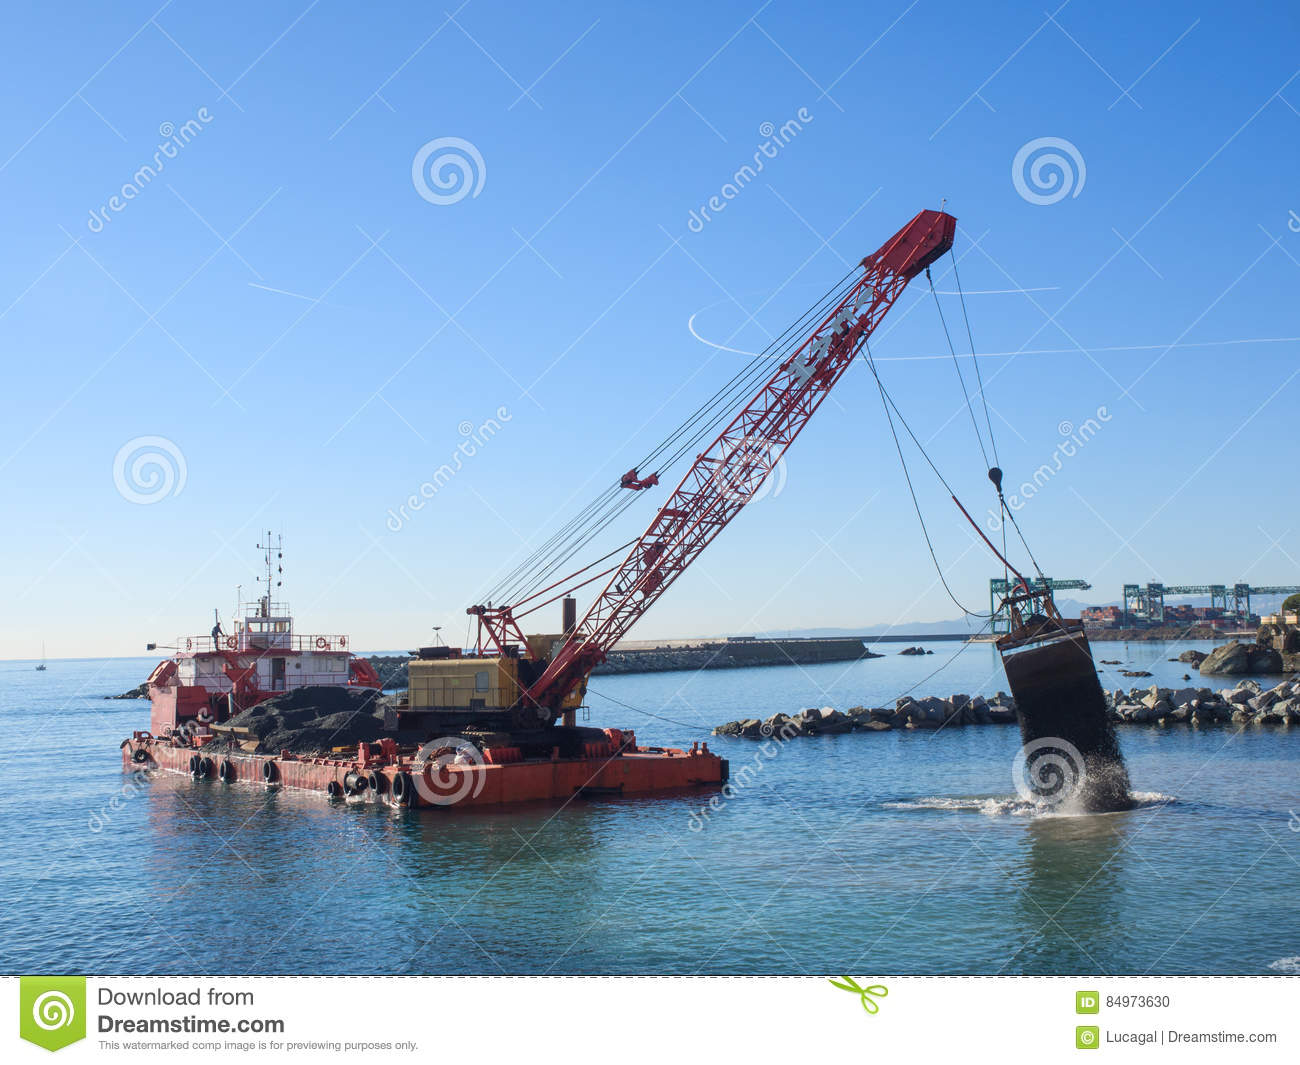 Grab Dredge With Clamshell Bucket Unloading Gravel To